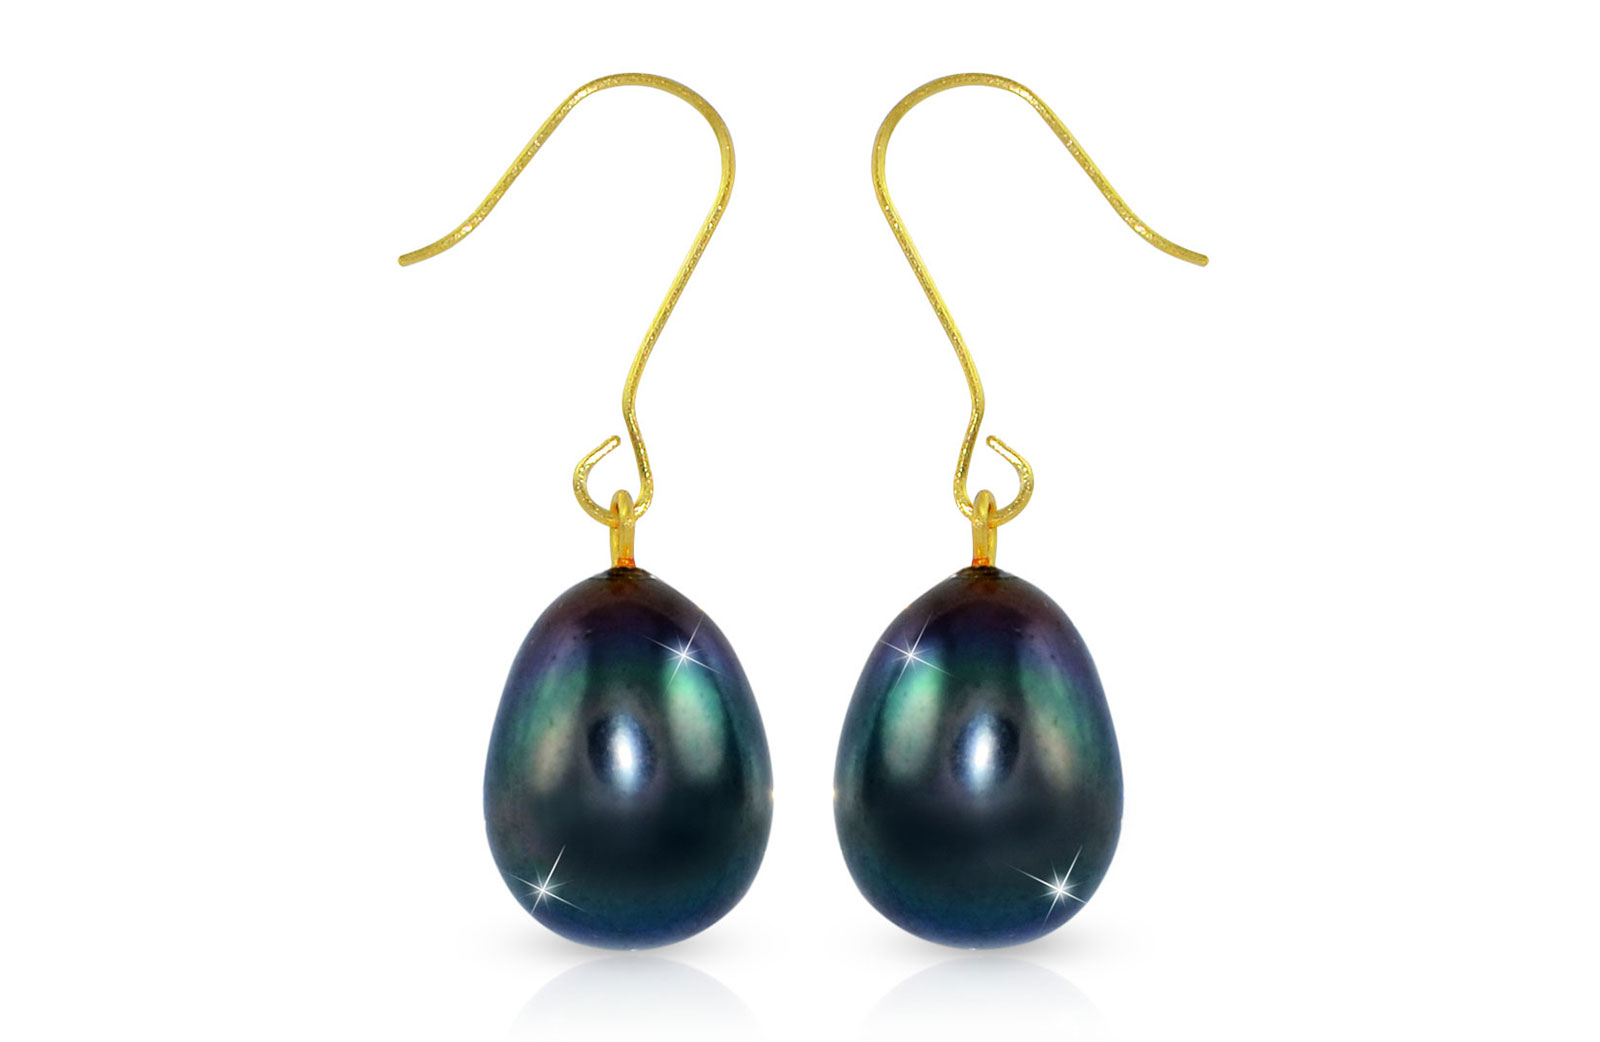 Vera Perla  9-10mm Big Peacock/Black Baroque Pearls Earrings in 18K Gold